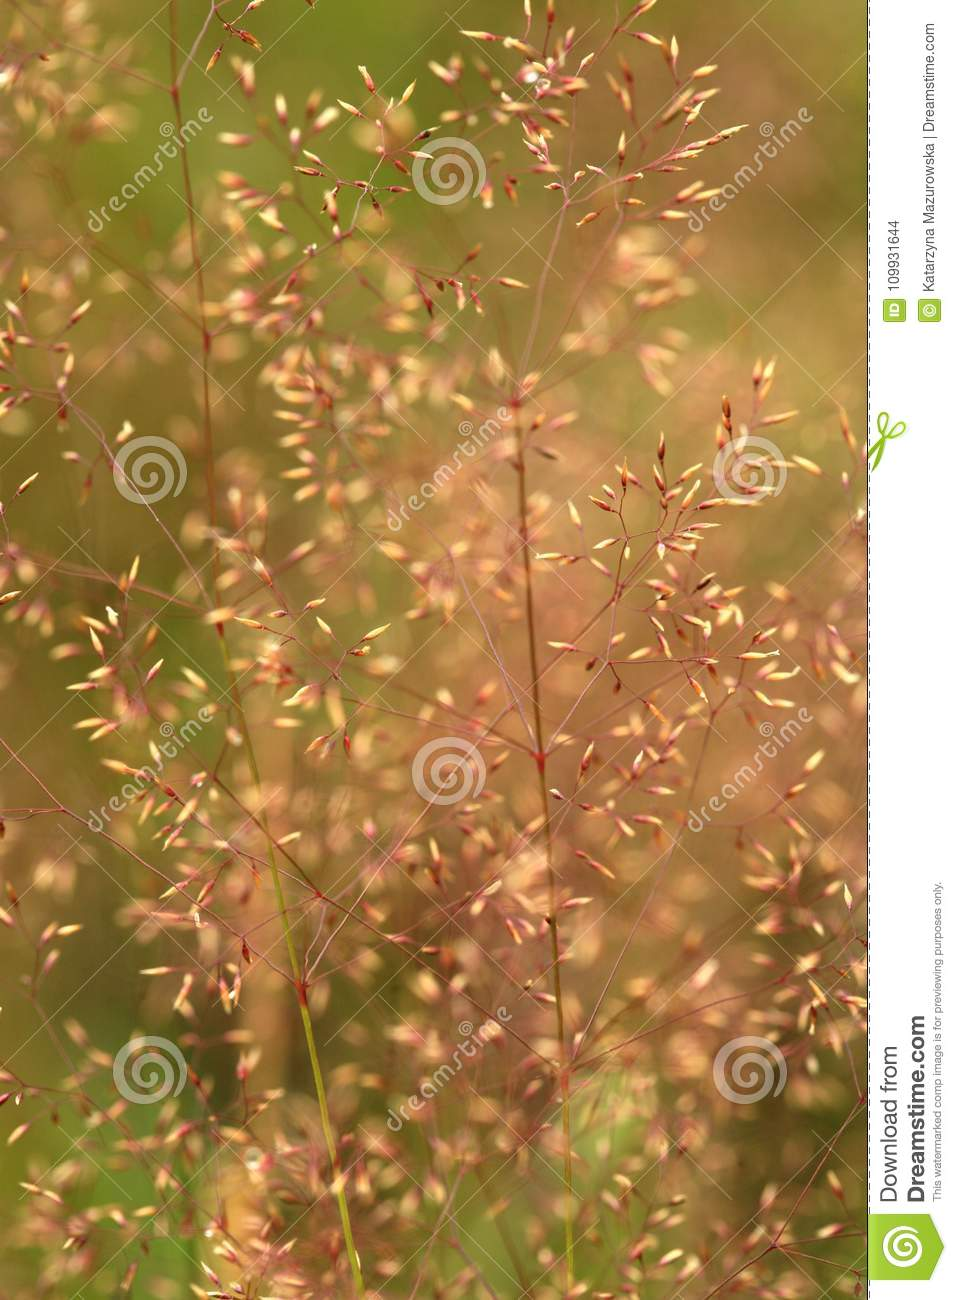 Natural backgrouds with grasses